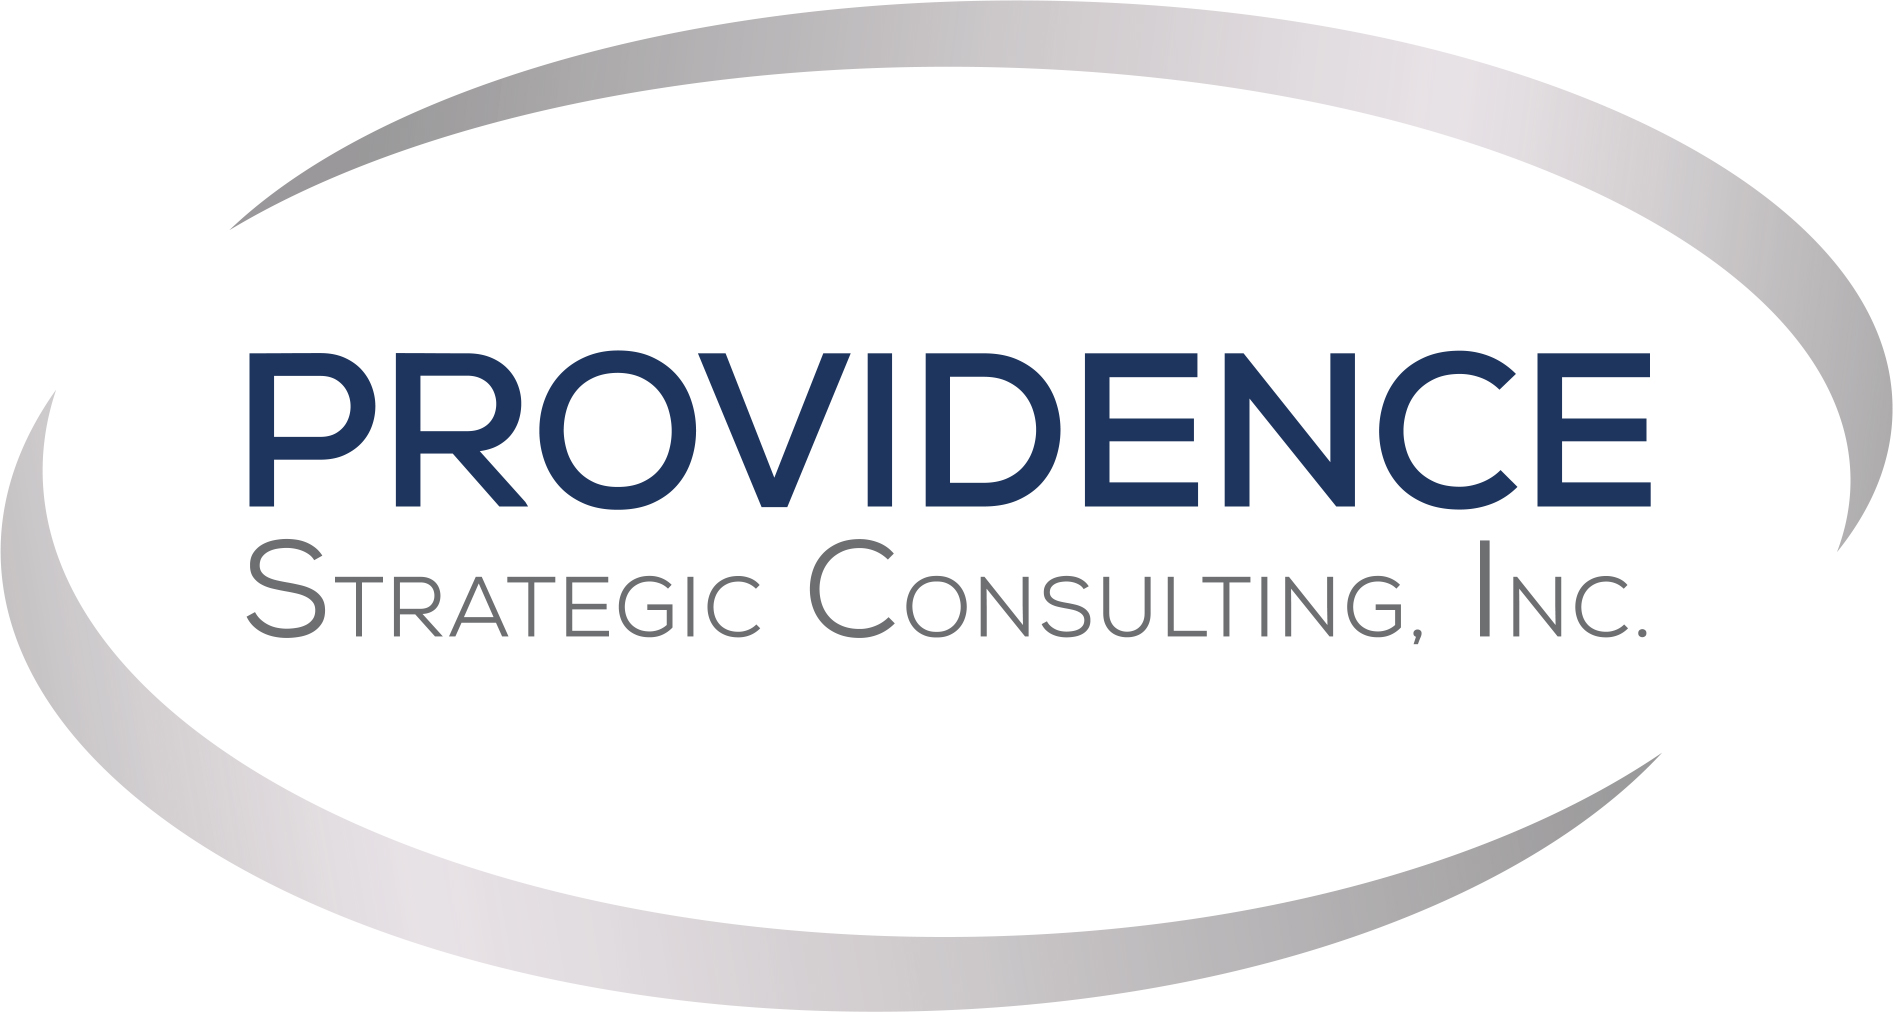 Providence Strategic Consulting - A Public Affairs, Marketing & Communications Firm